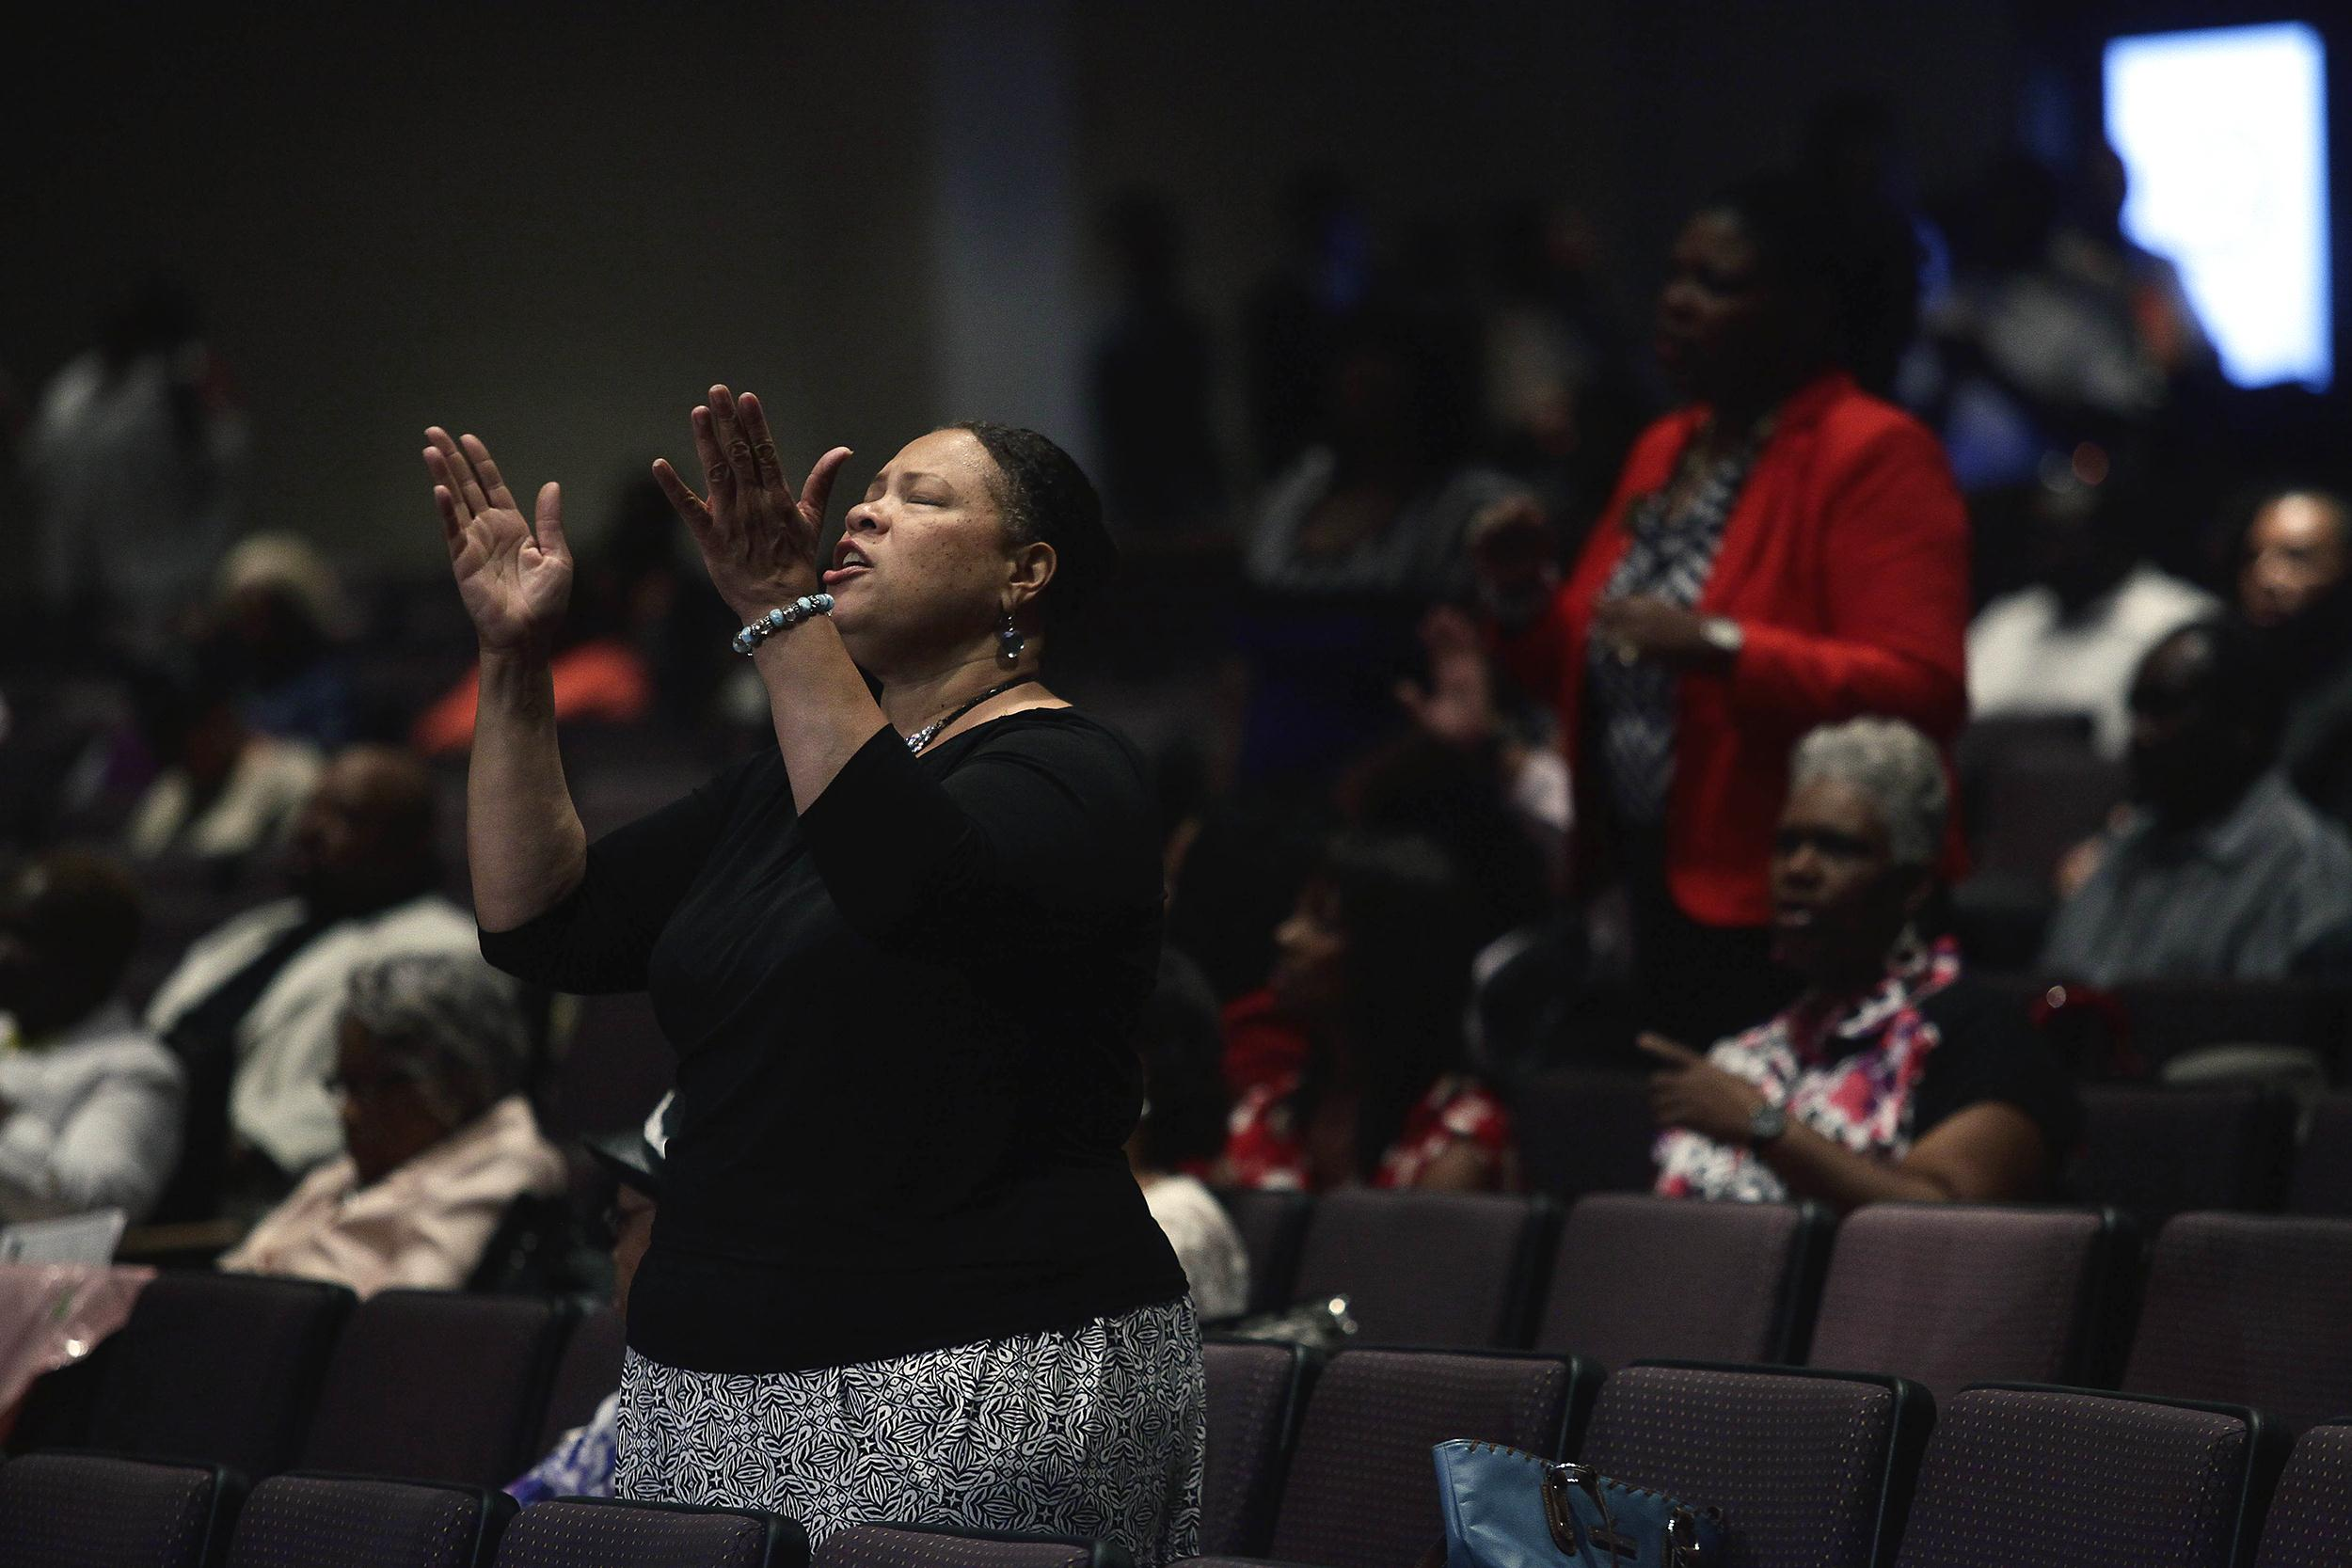 Image: Ferguson Residents Attend Sunday Service At Local Church